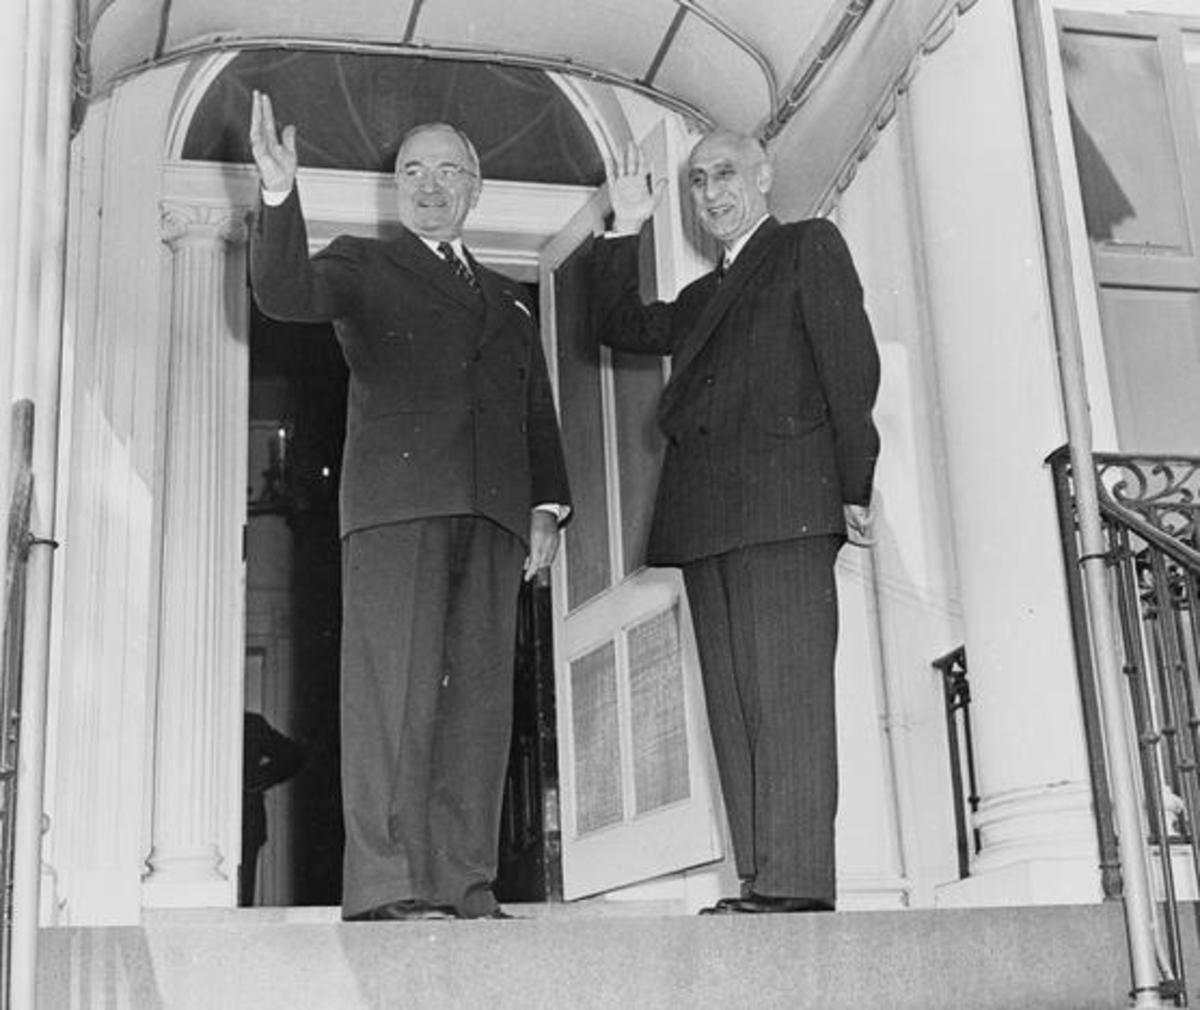 Truman meets Mossadegh, 2 years before the CIA removes him from power in Iran.